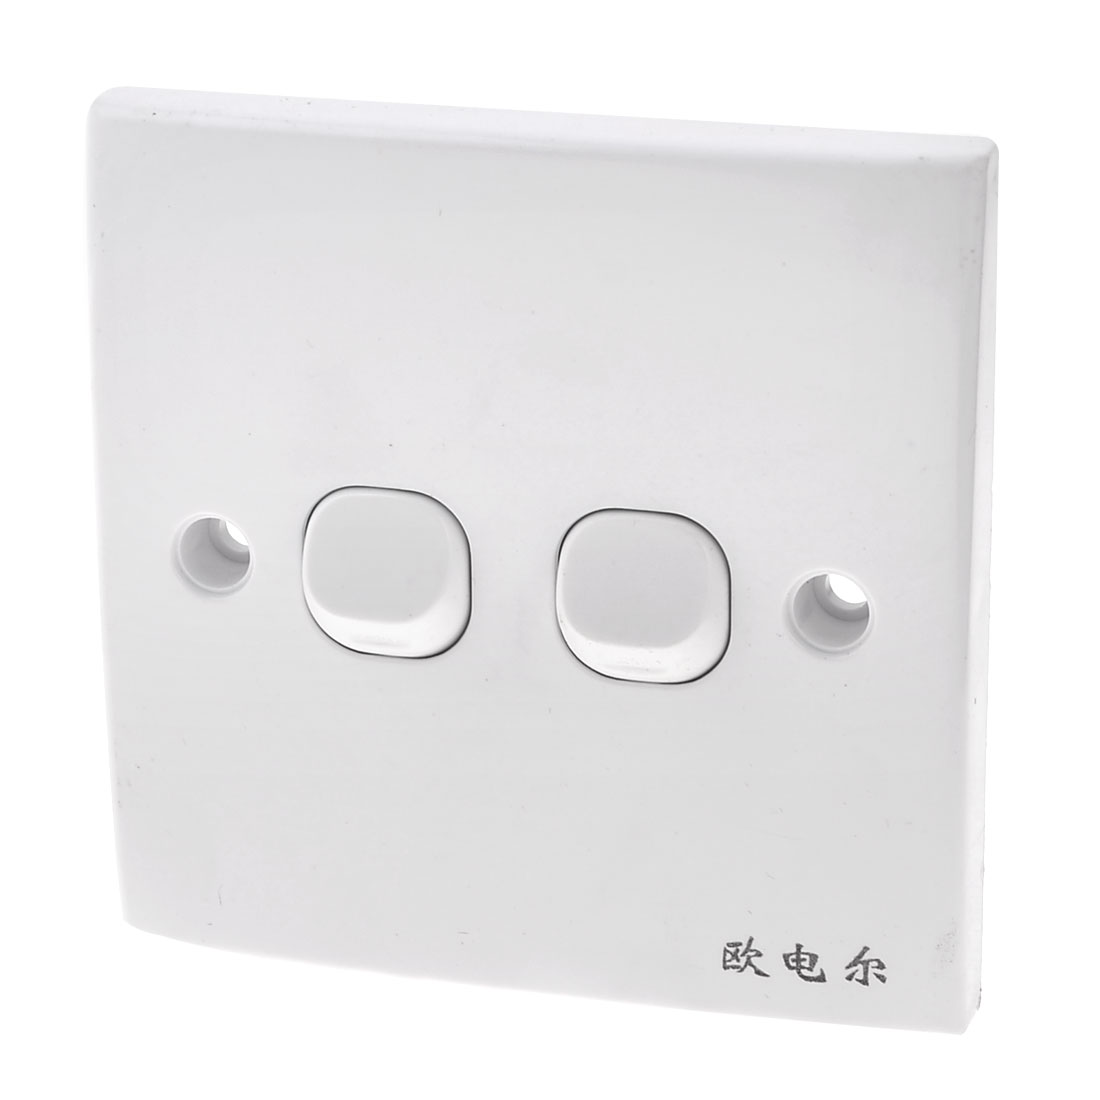 White Plastic Two Gang On-Off Push Button Type Wall Switch Plate 8.6 x 8.6cm